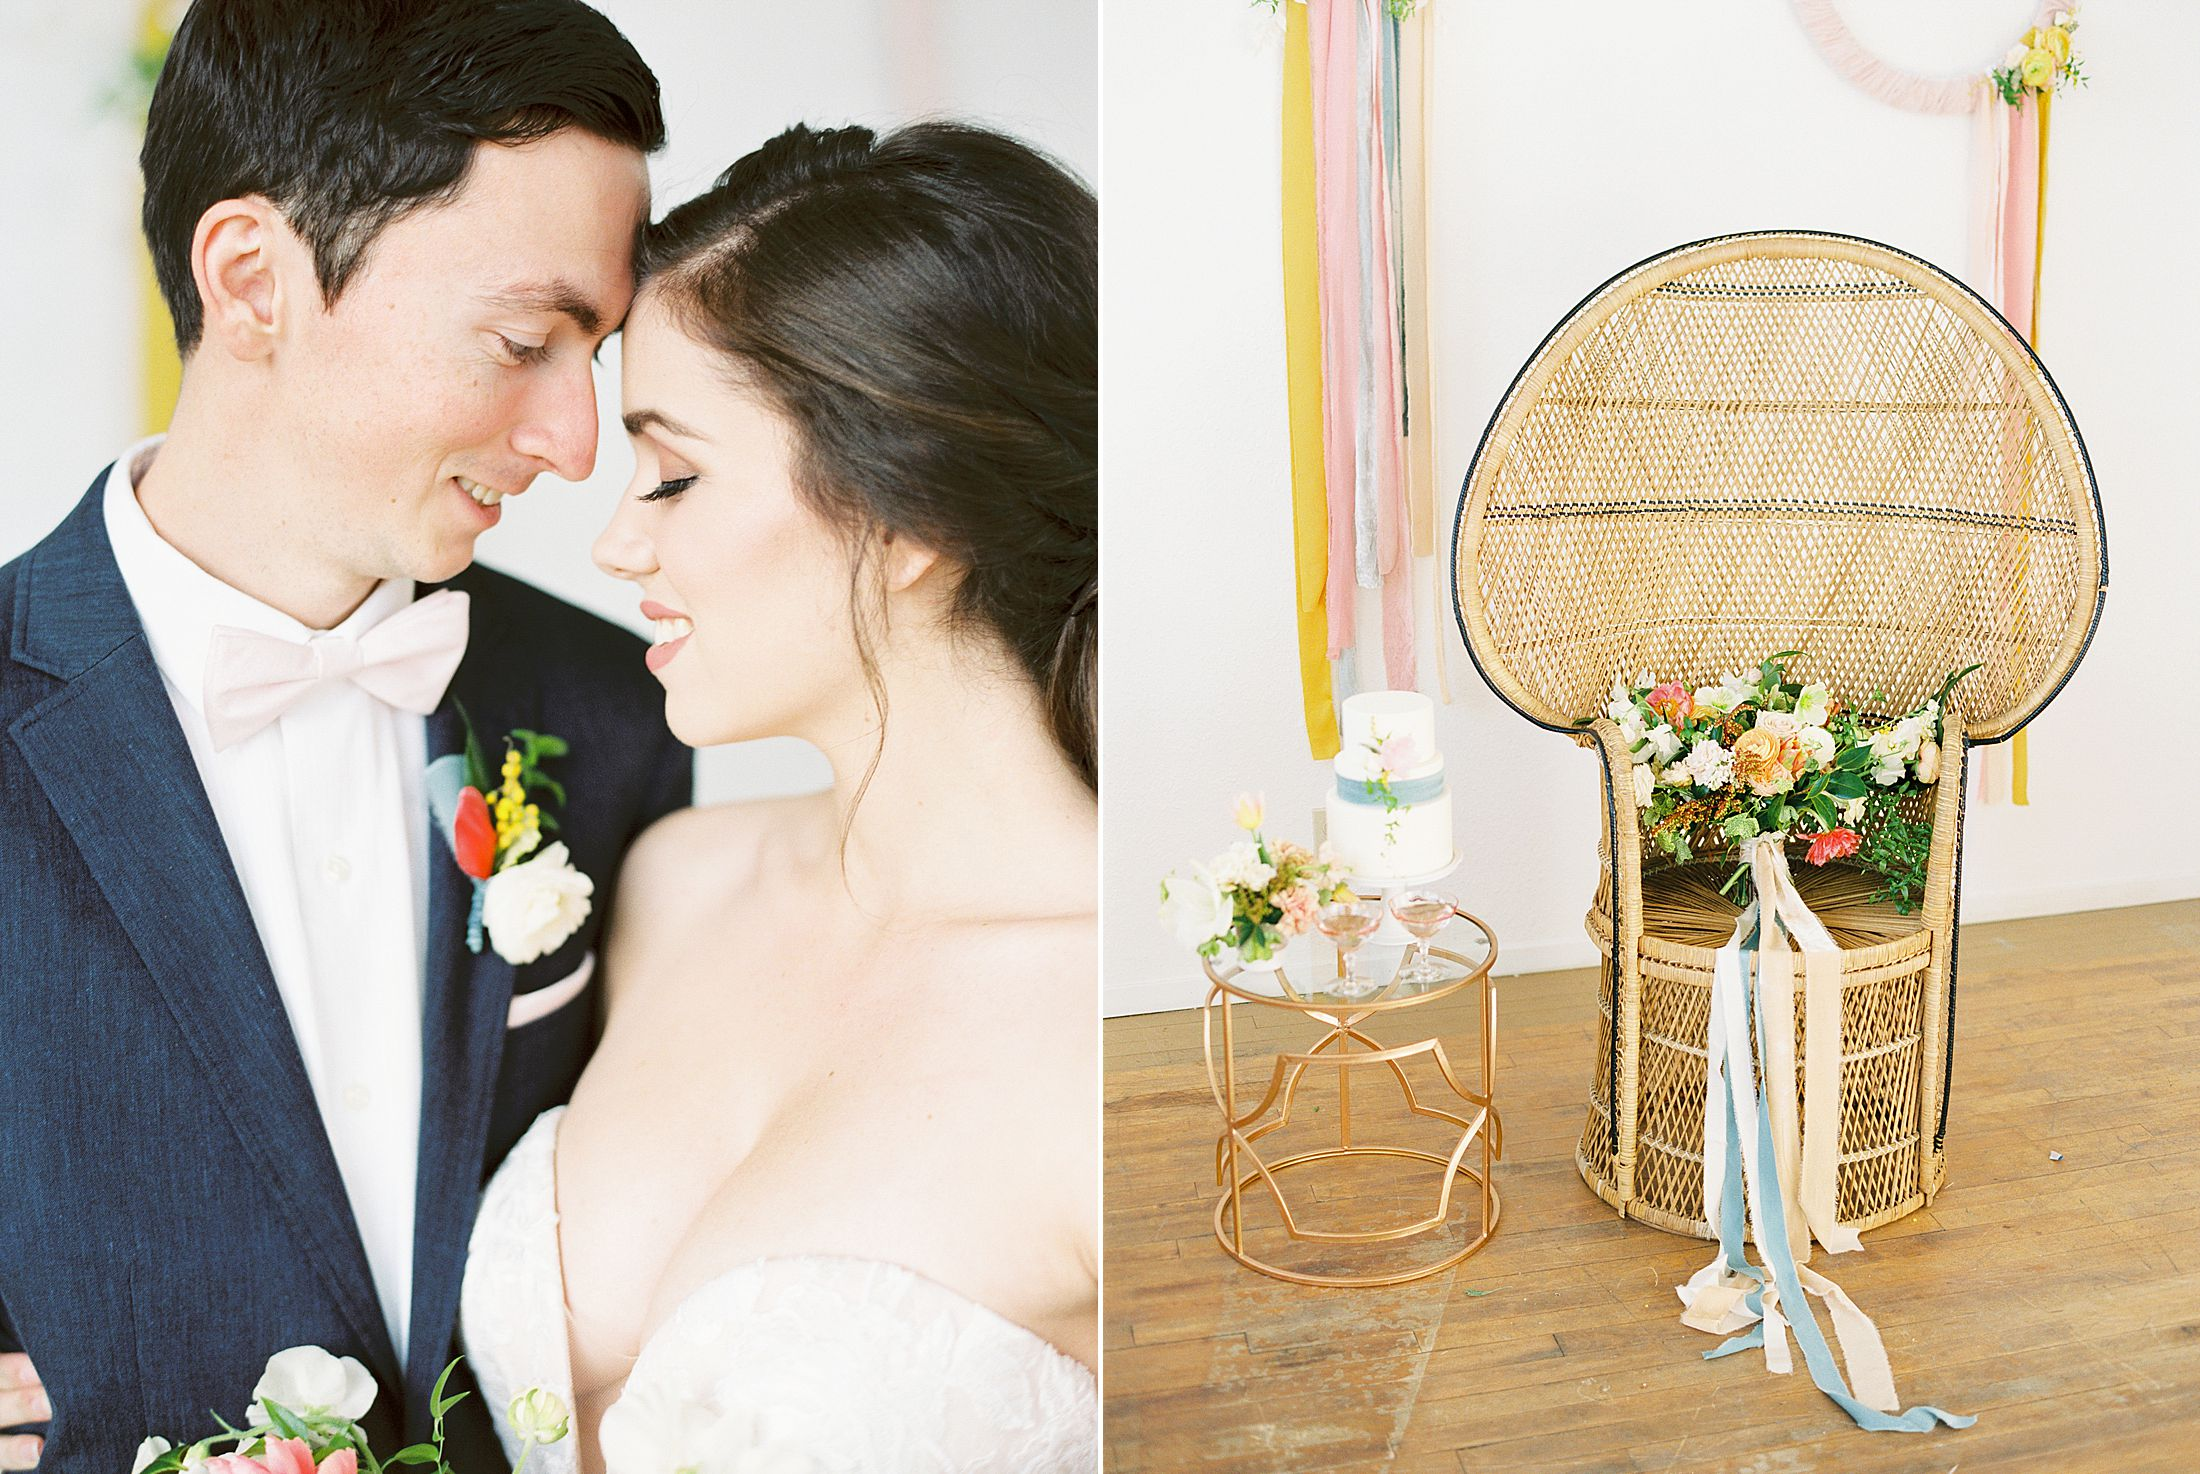 Bay Area Spring Wedding Inspiration - Ashley Baumgartner - Inspired By This - Party Crush Studio and Lens of Lenox Videography - Bay Area Wedding Photography_0004.jpg